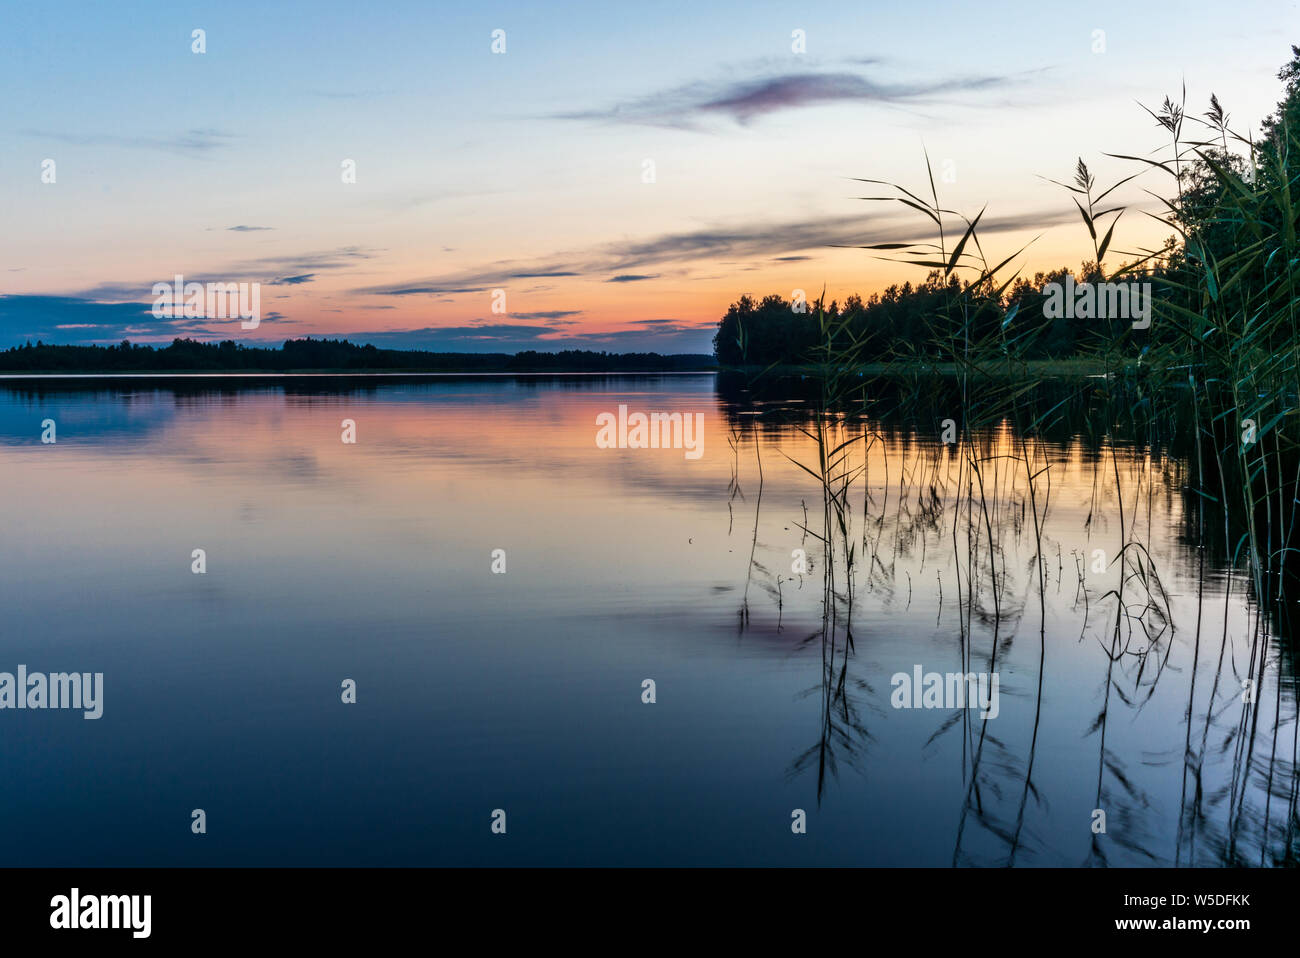 Reflections on the calm waters of the Saimaa lake in Finland at Sunset  - 9 Stock Photo